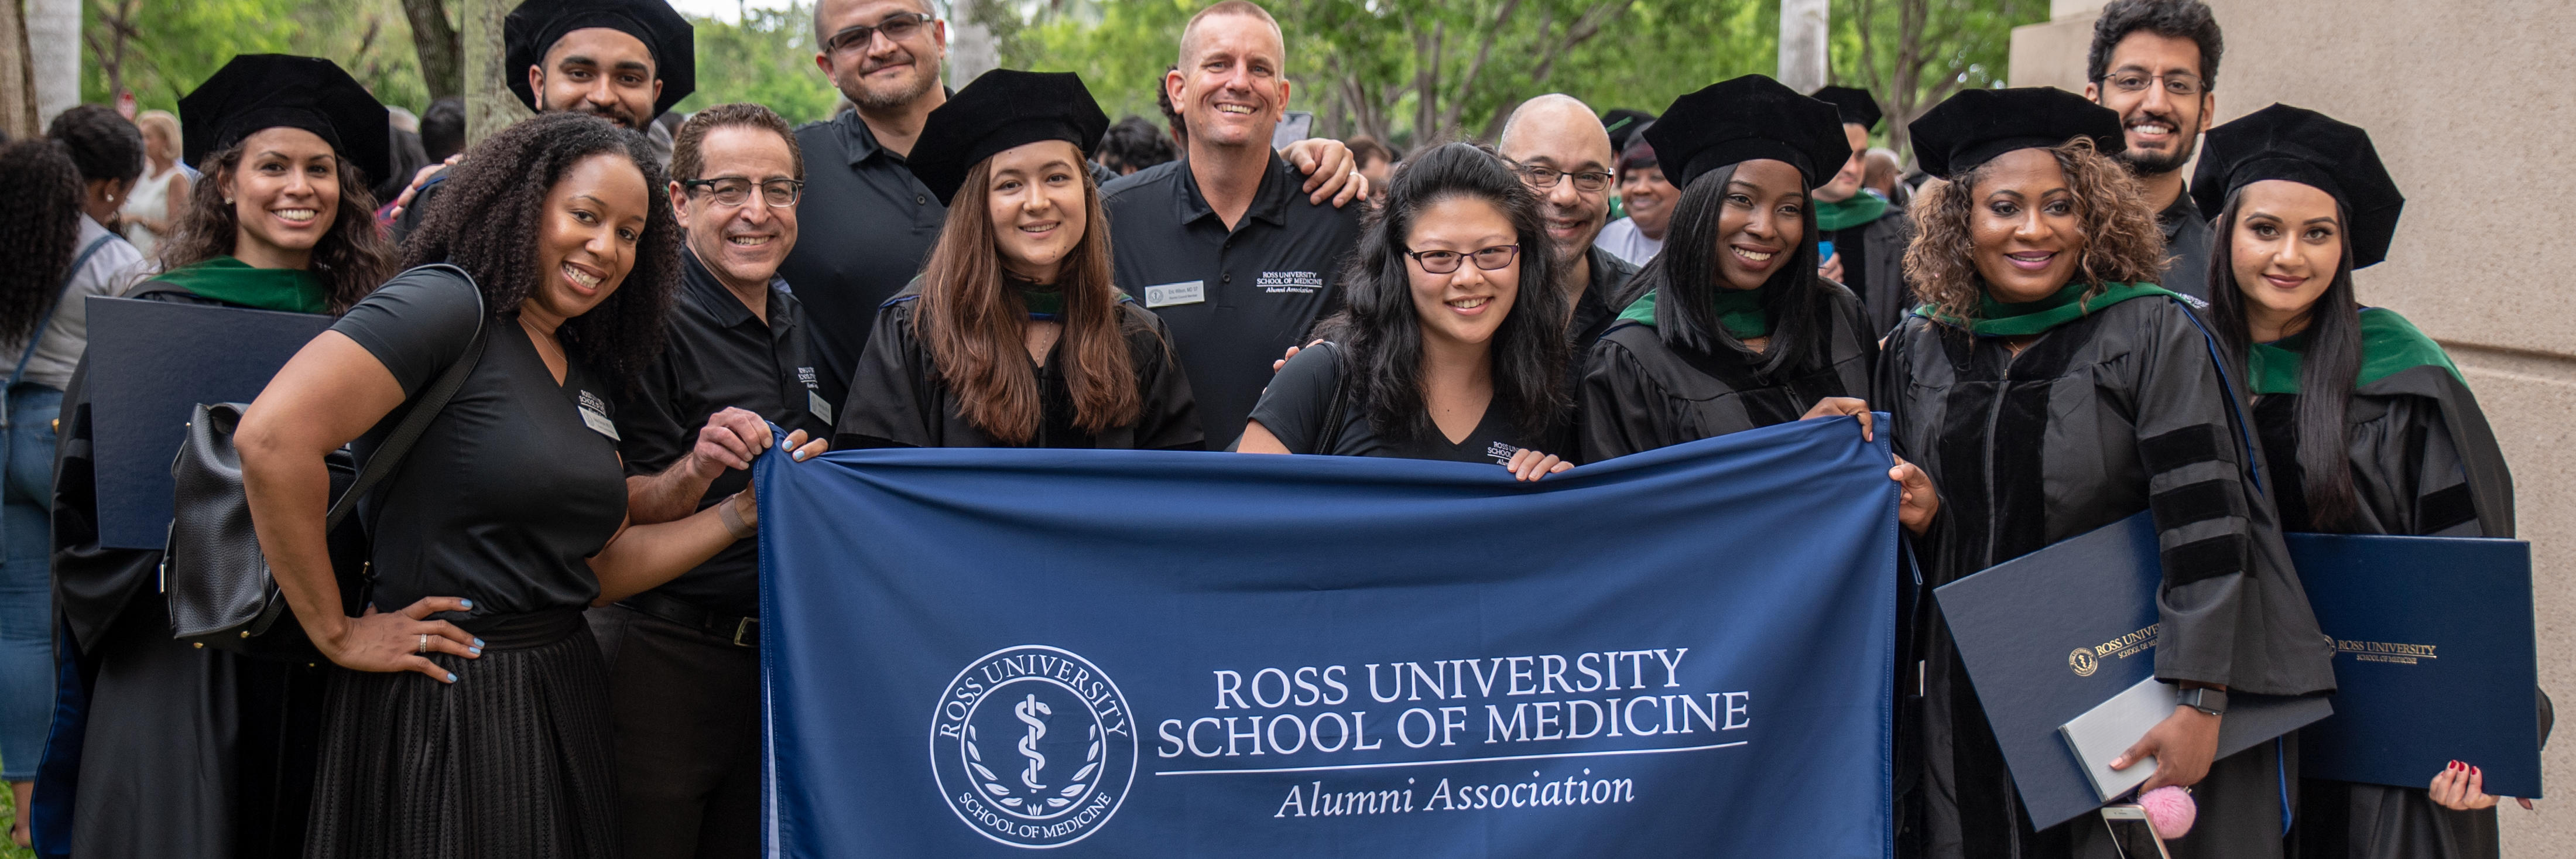 Ross University School of Medicine Alumni Association